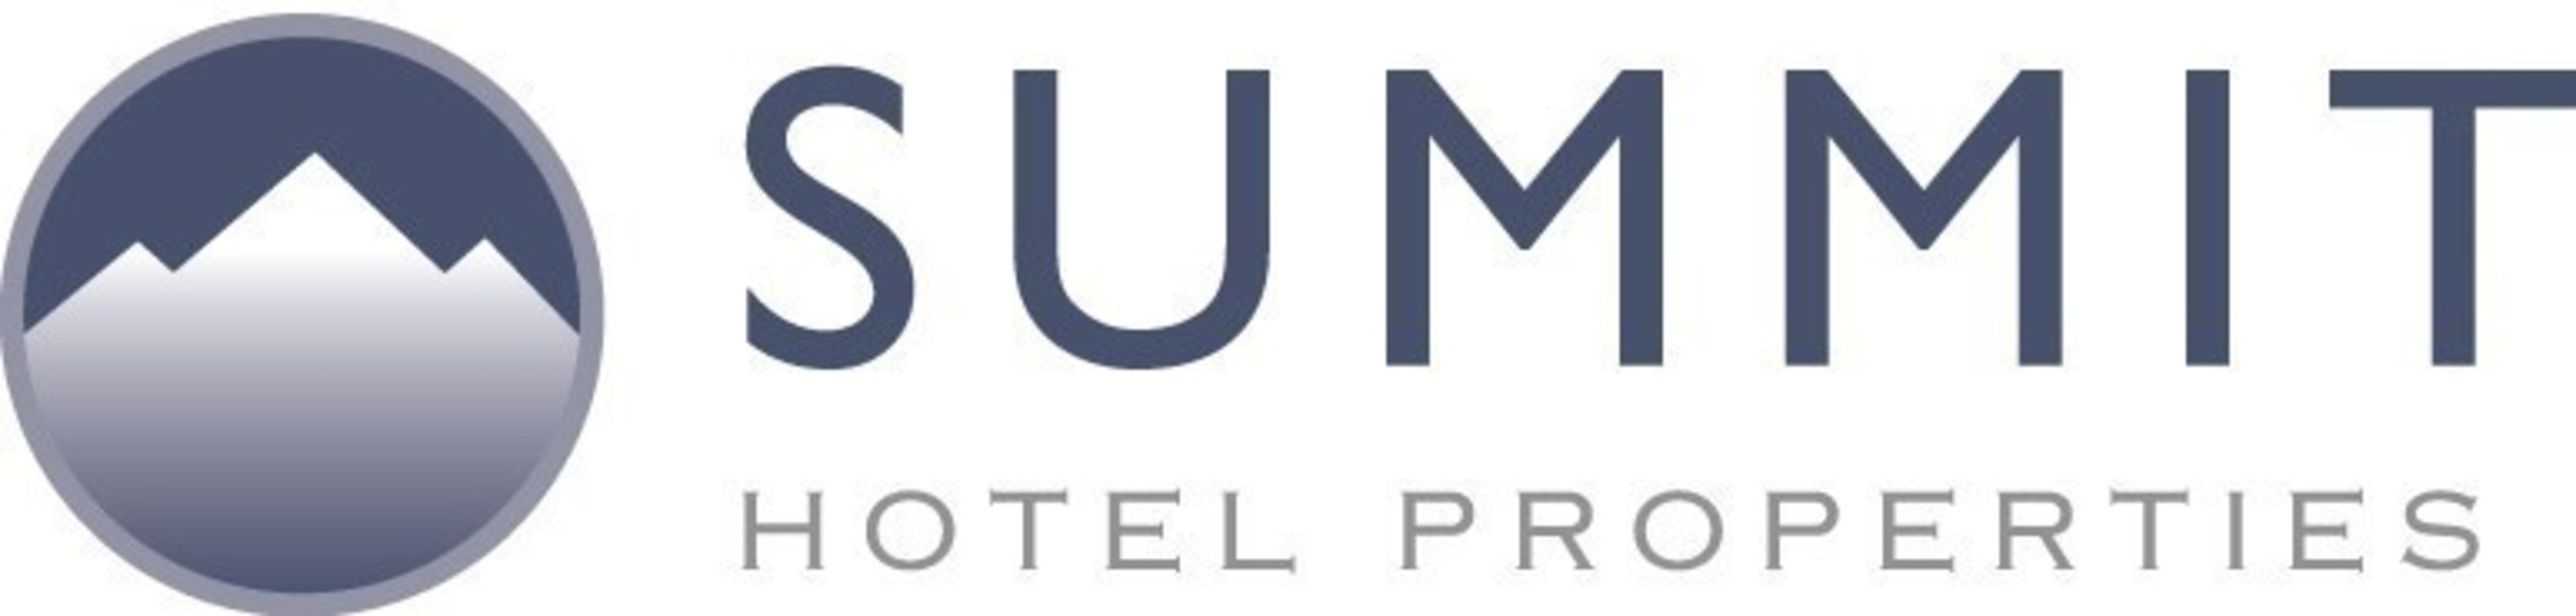 Summit Hotel Properties, Inc. Company Logo